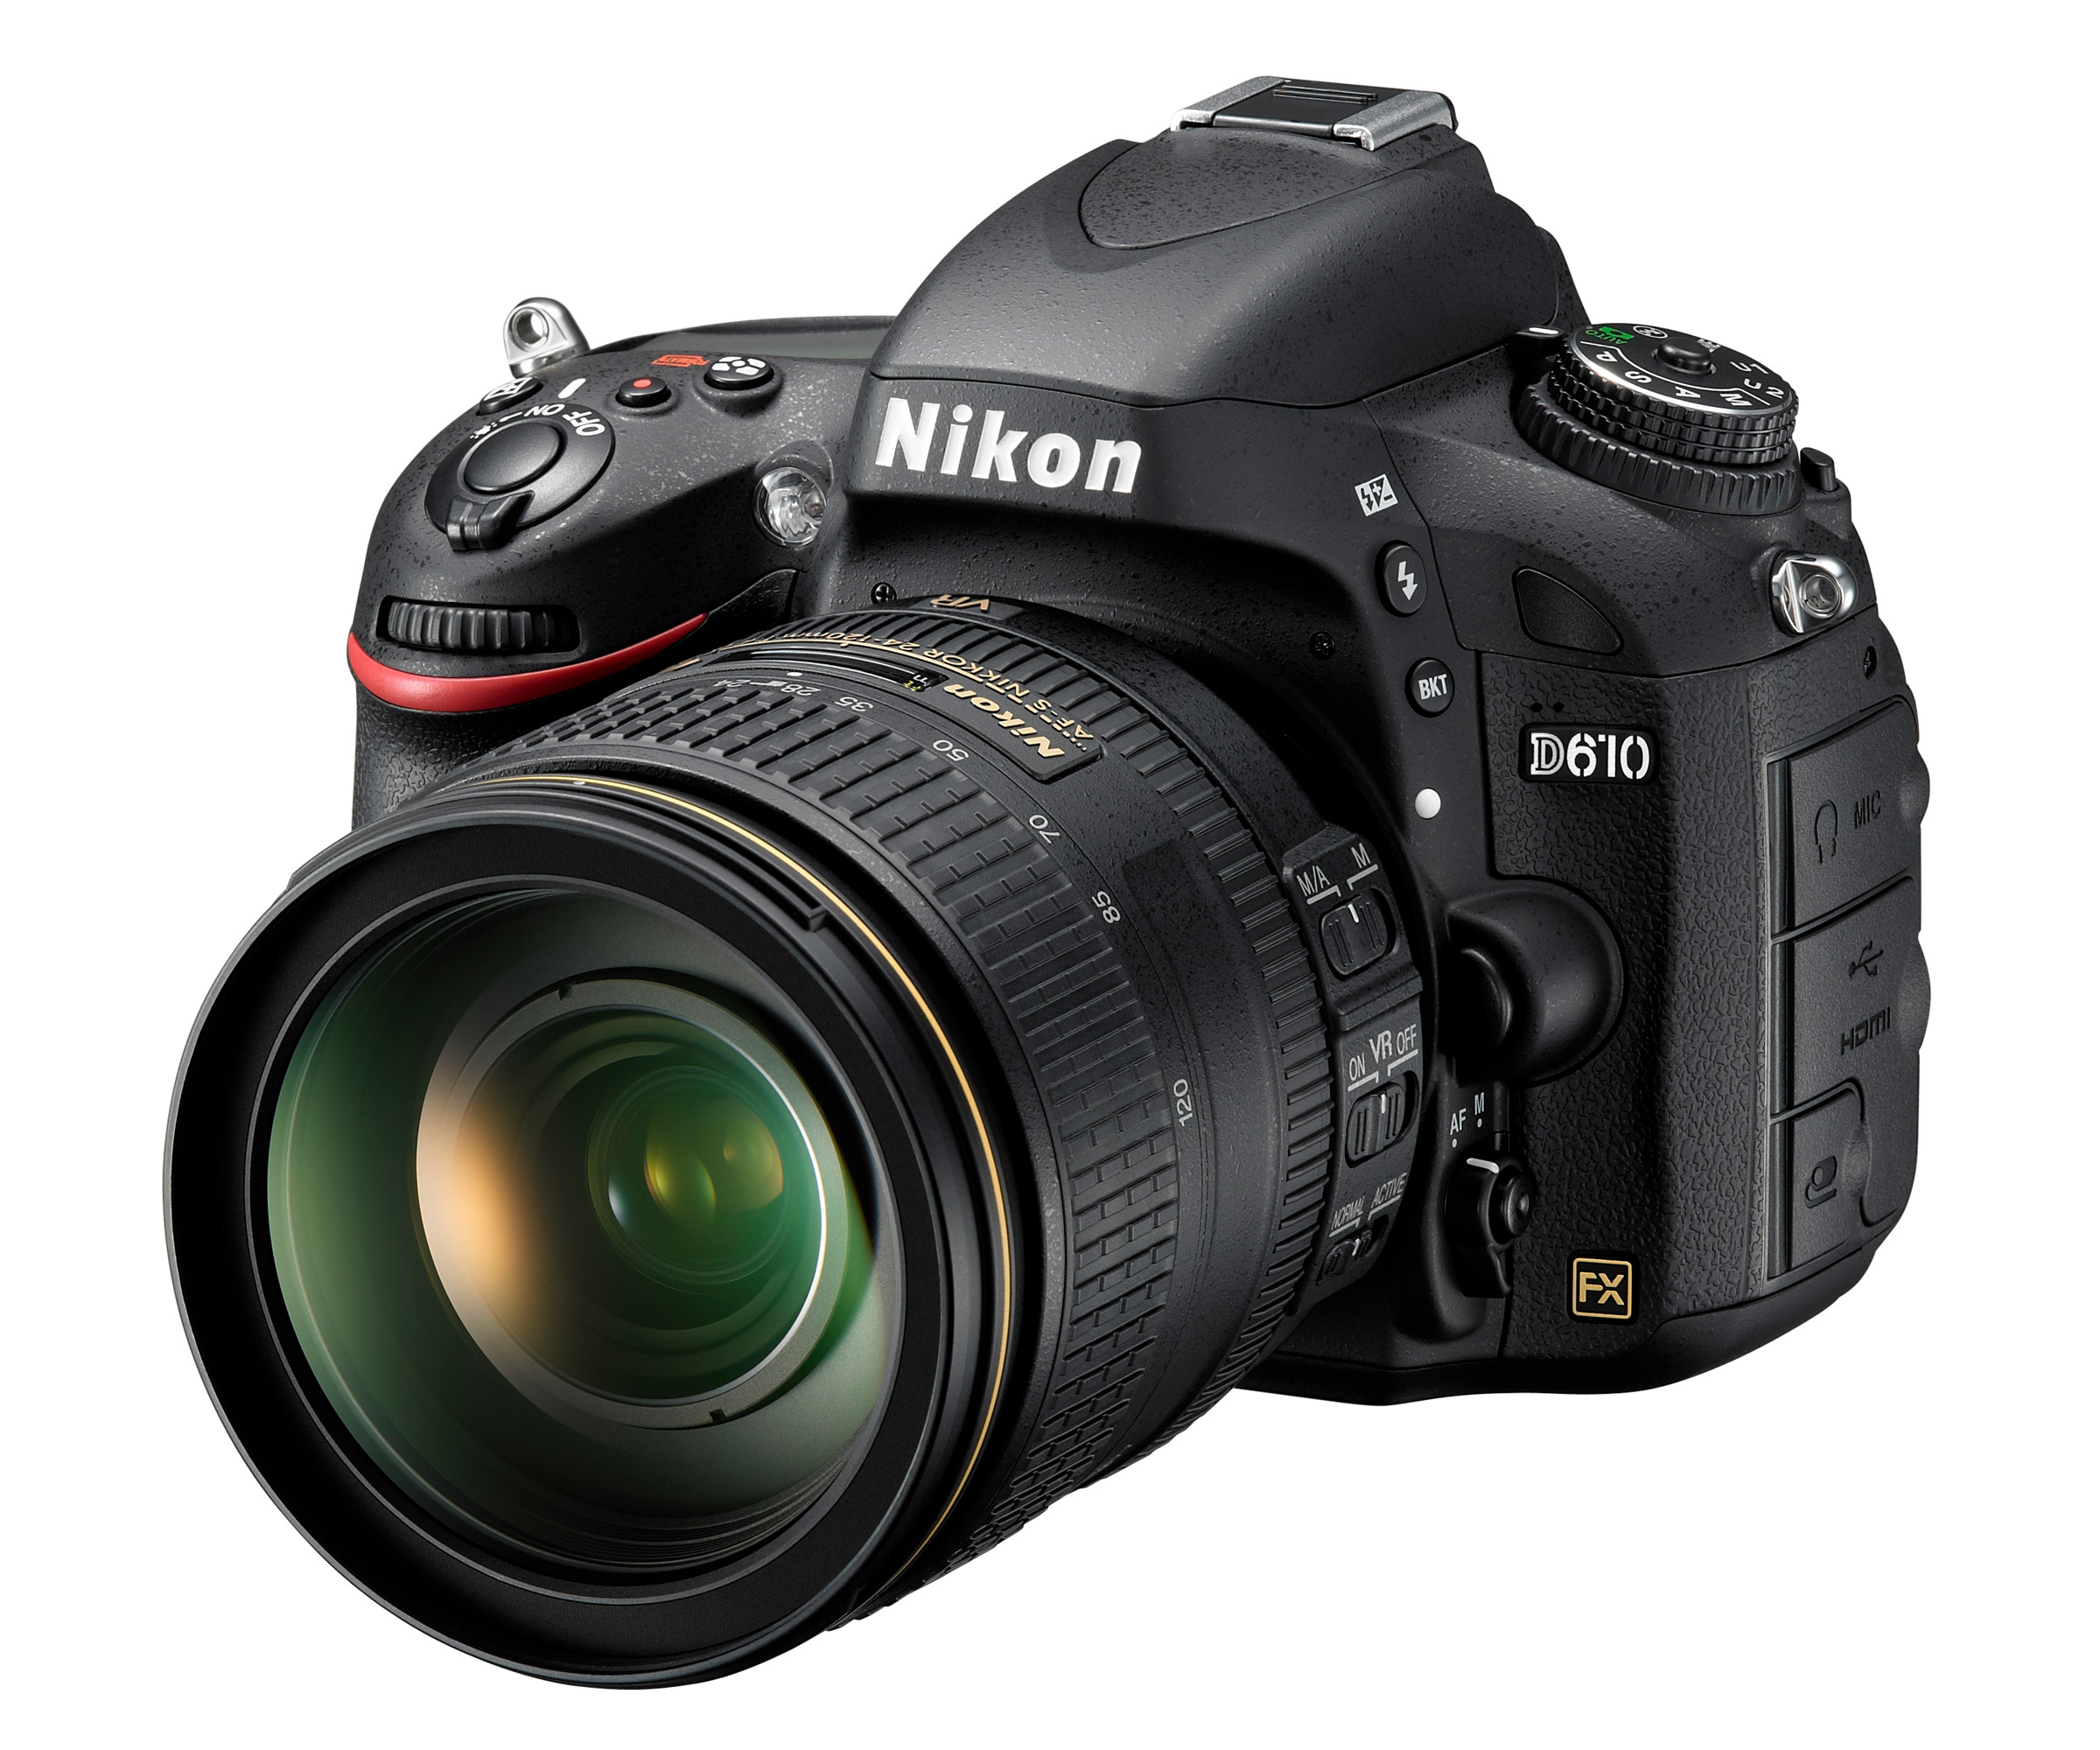 -NIKON D610 BODY N. scatti 5.271